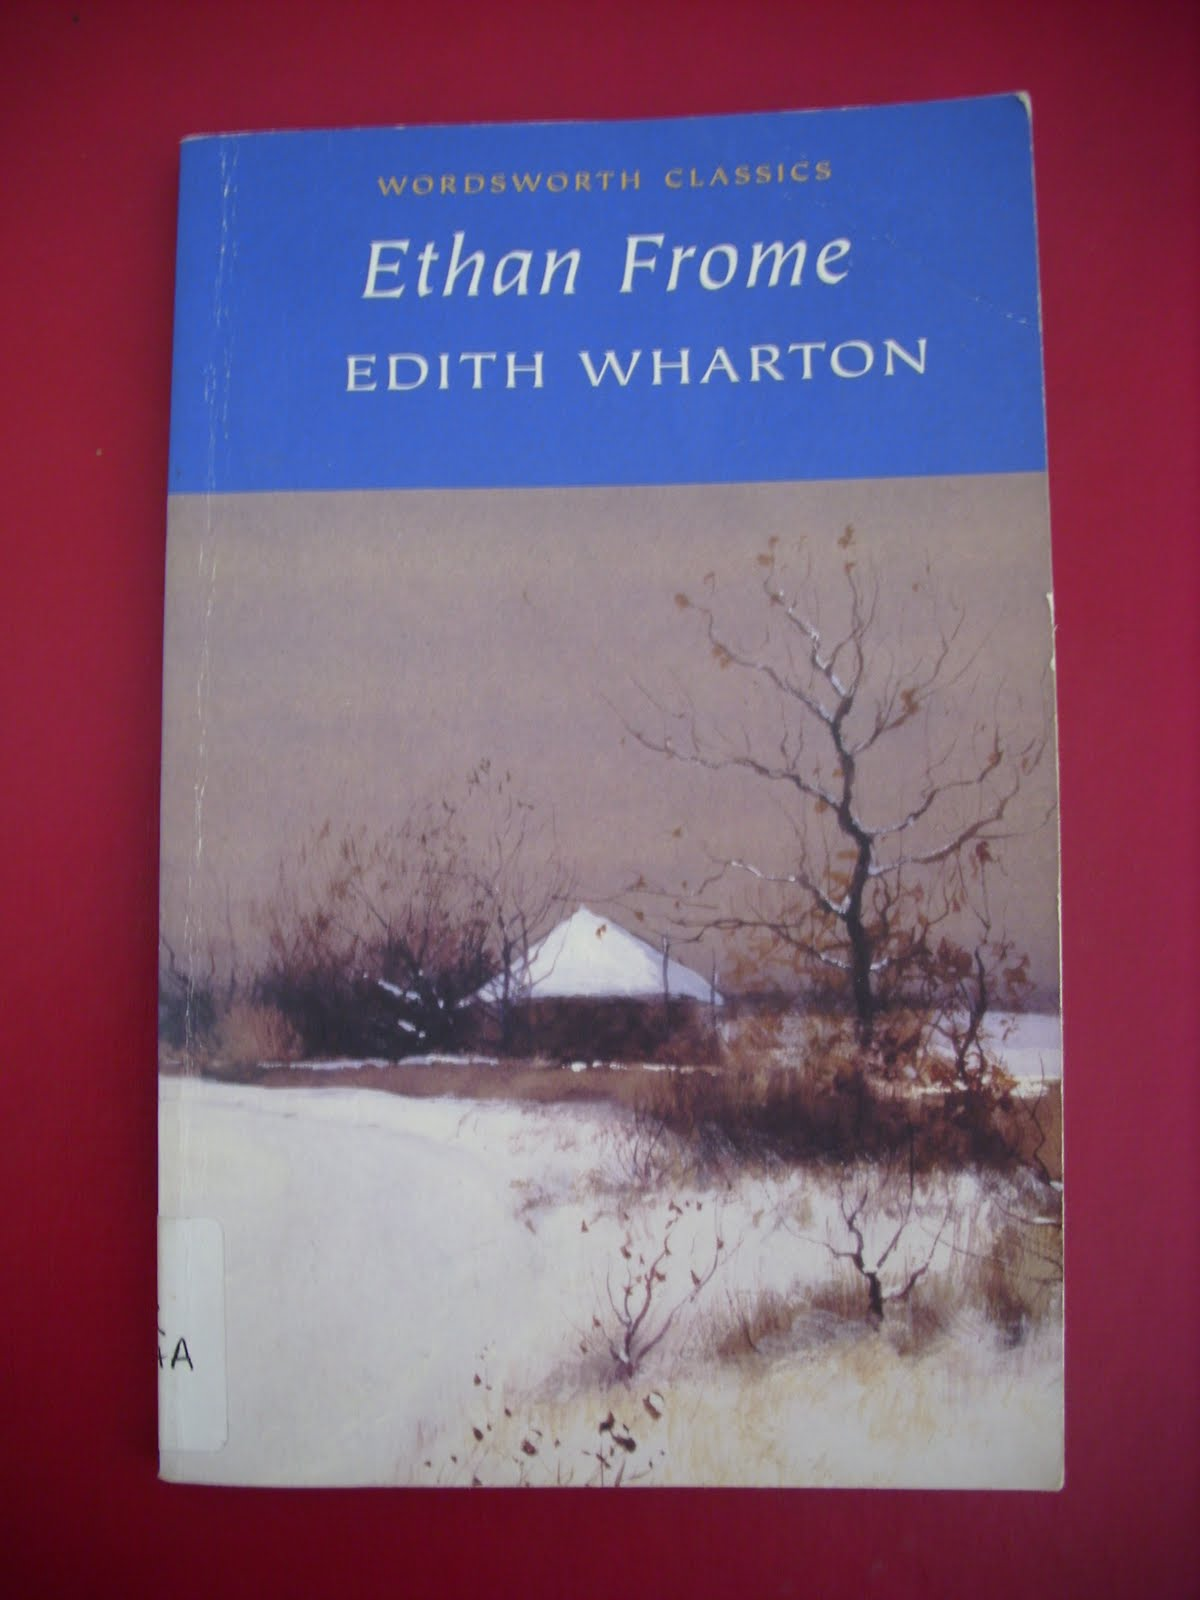 "edith wharton s ethan frome analysis The project gutenberg ebook of ethan frome, by edith wharton this ebook is for   facts, and i had the sense that the deeper meaning of the story was in the gaps   but i haven't got the time now i'm late as it is,"" he returned, holding his old."